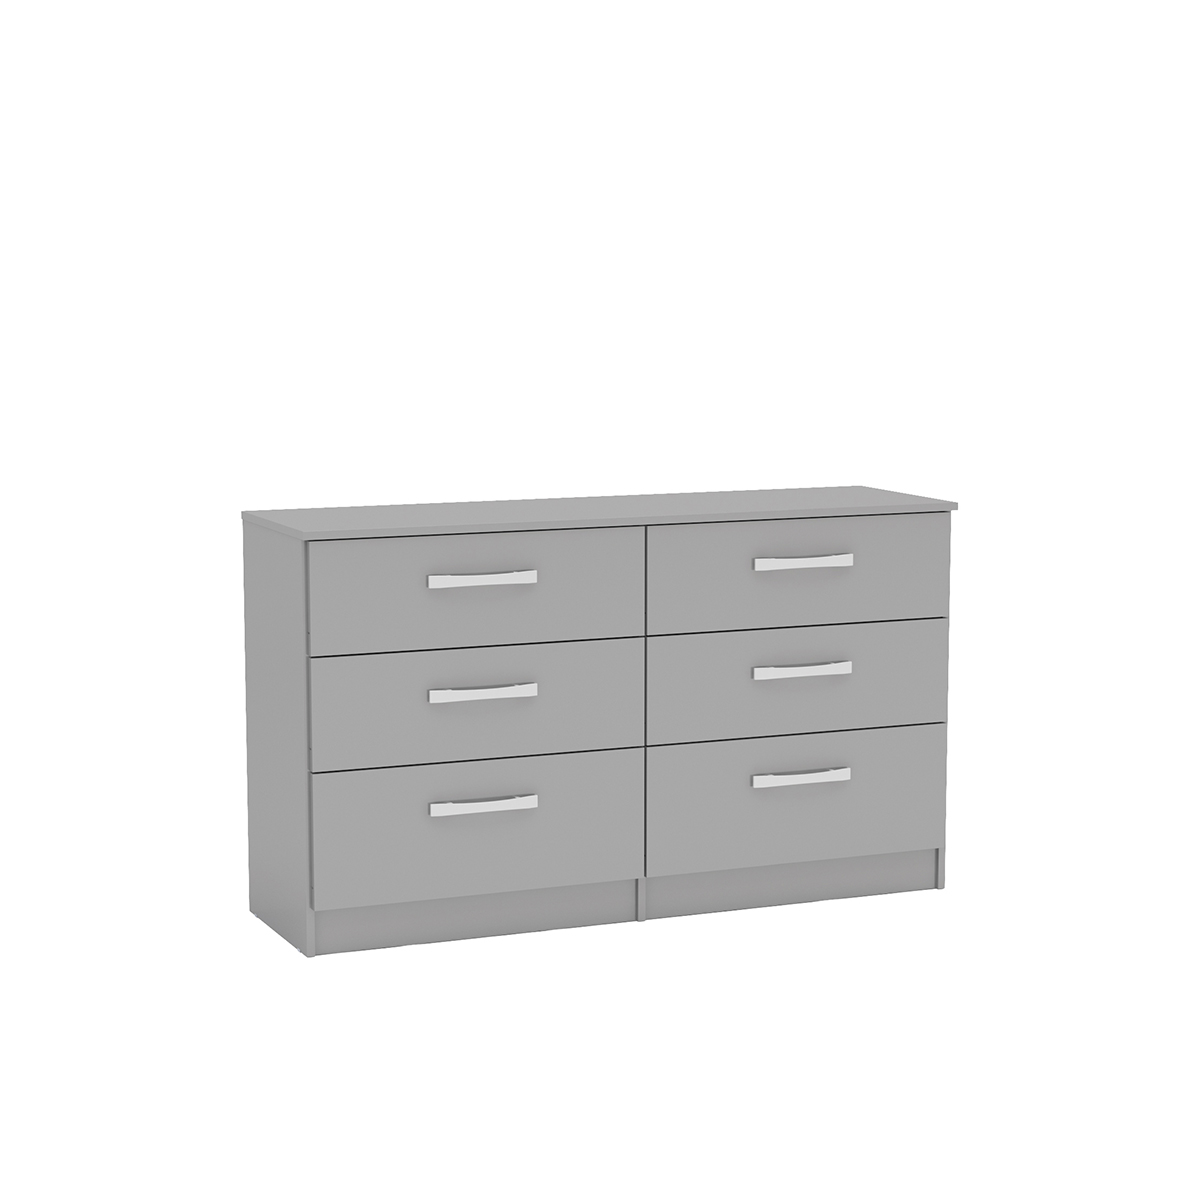 Lynx Grey High Gloss 6 Drawer Wide Chest £164